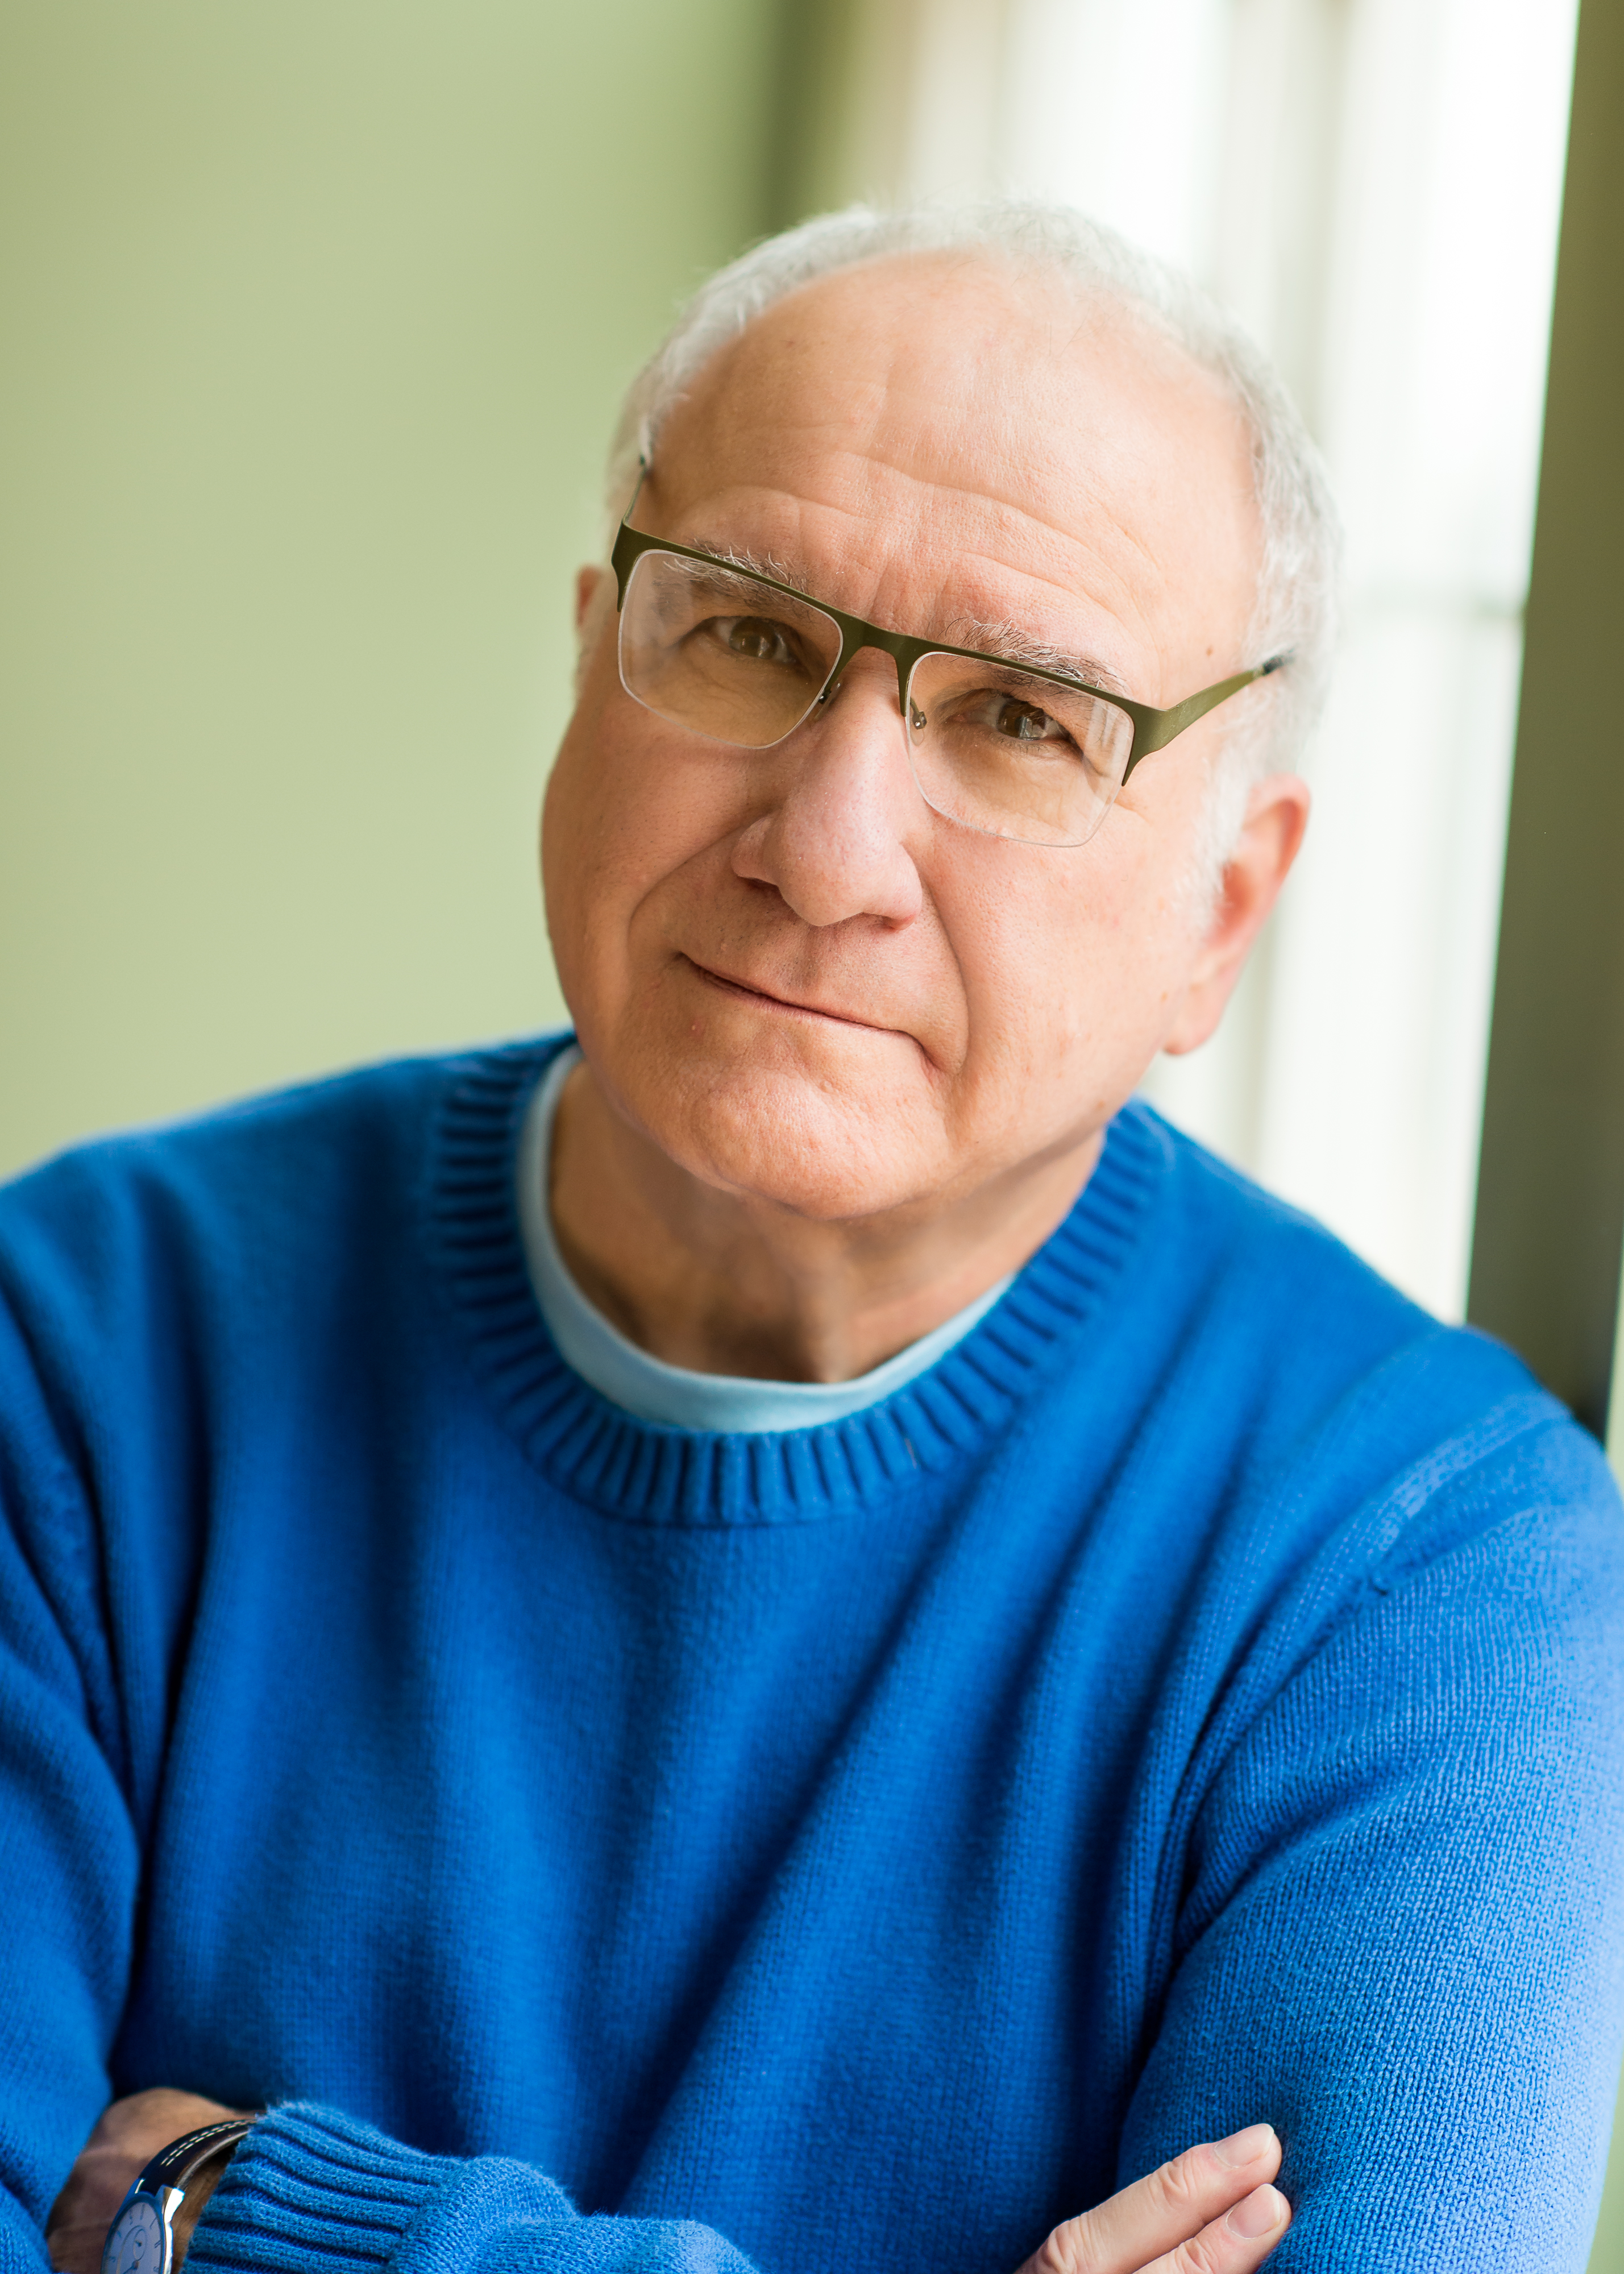 Profile photo of Harvey Ovshinsky and how he looks today with short white hair, wire-rim glasses, wearing a crew neck sky blue sweater.